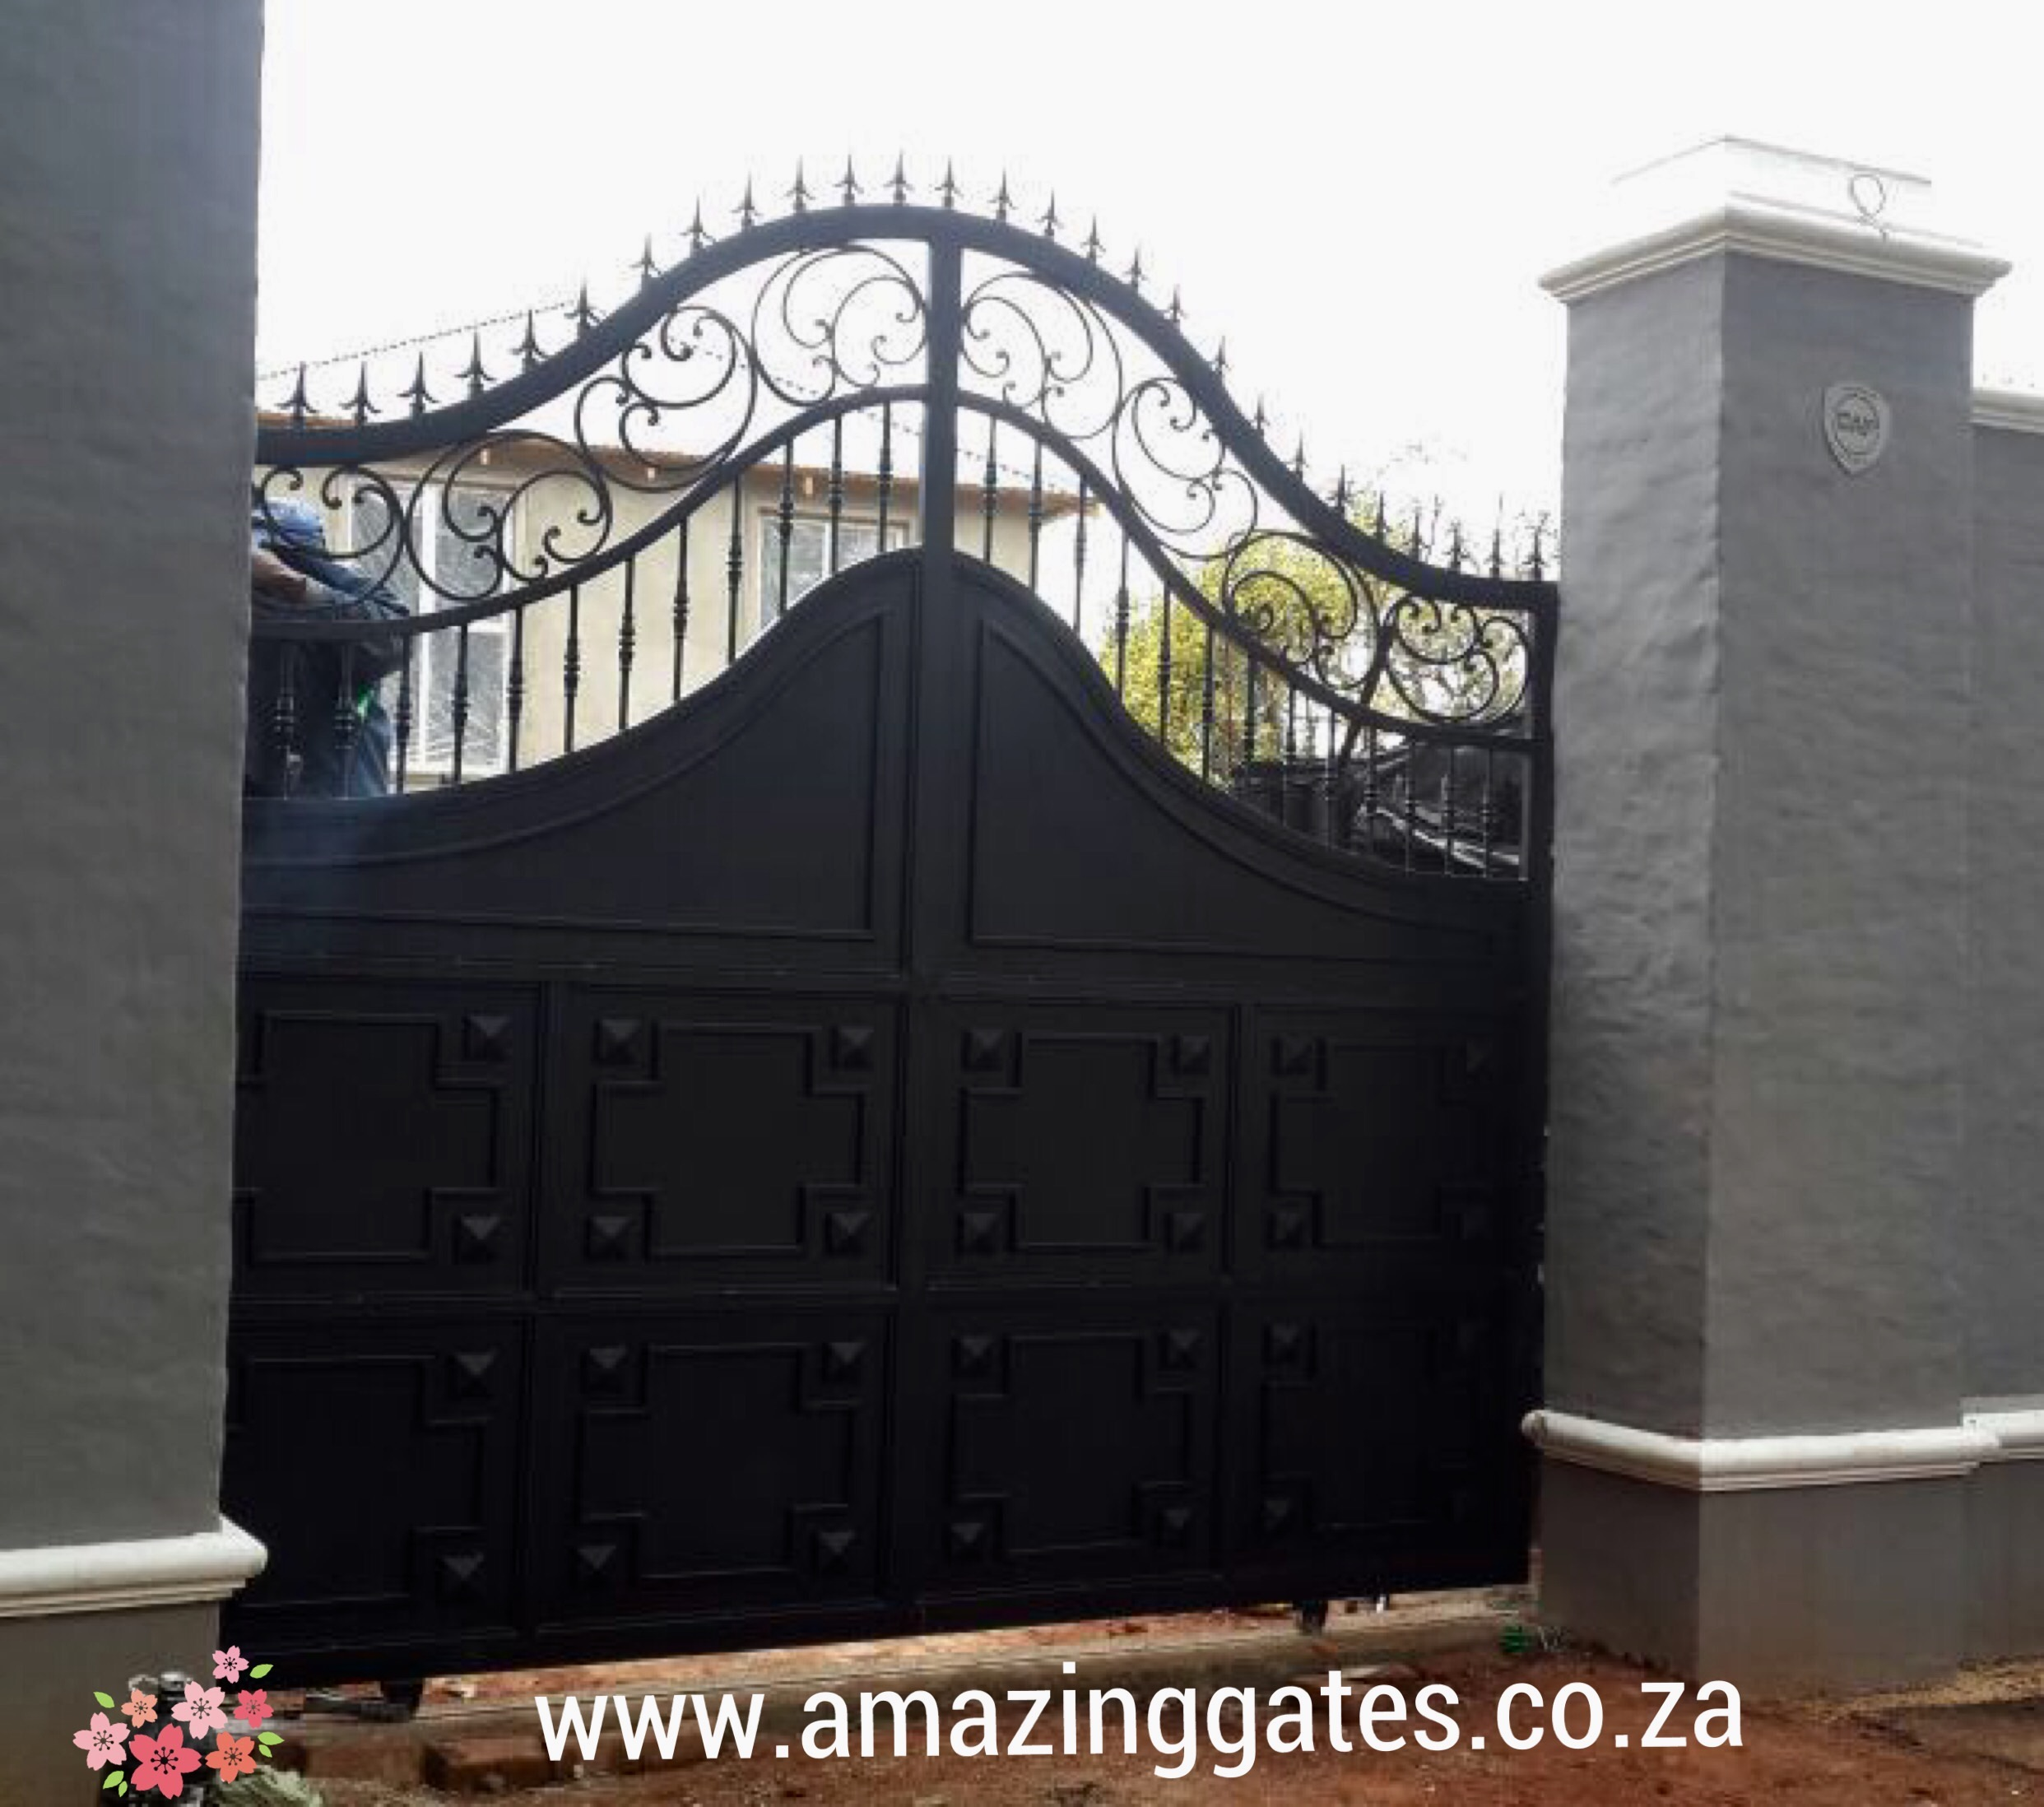 GATE DESIGNS IN SOUTH AFRICA